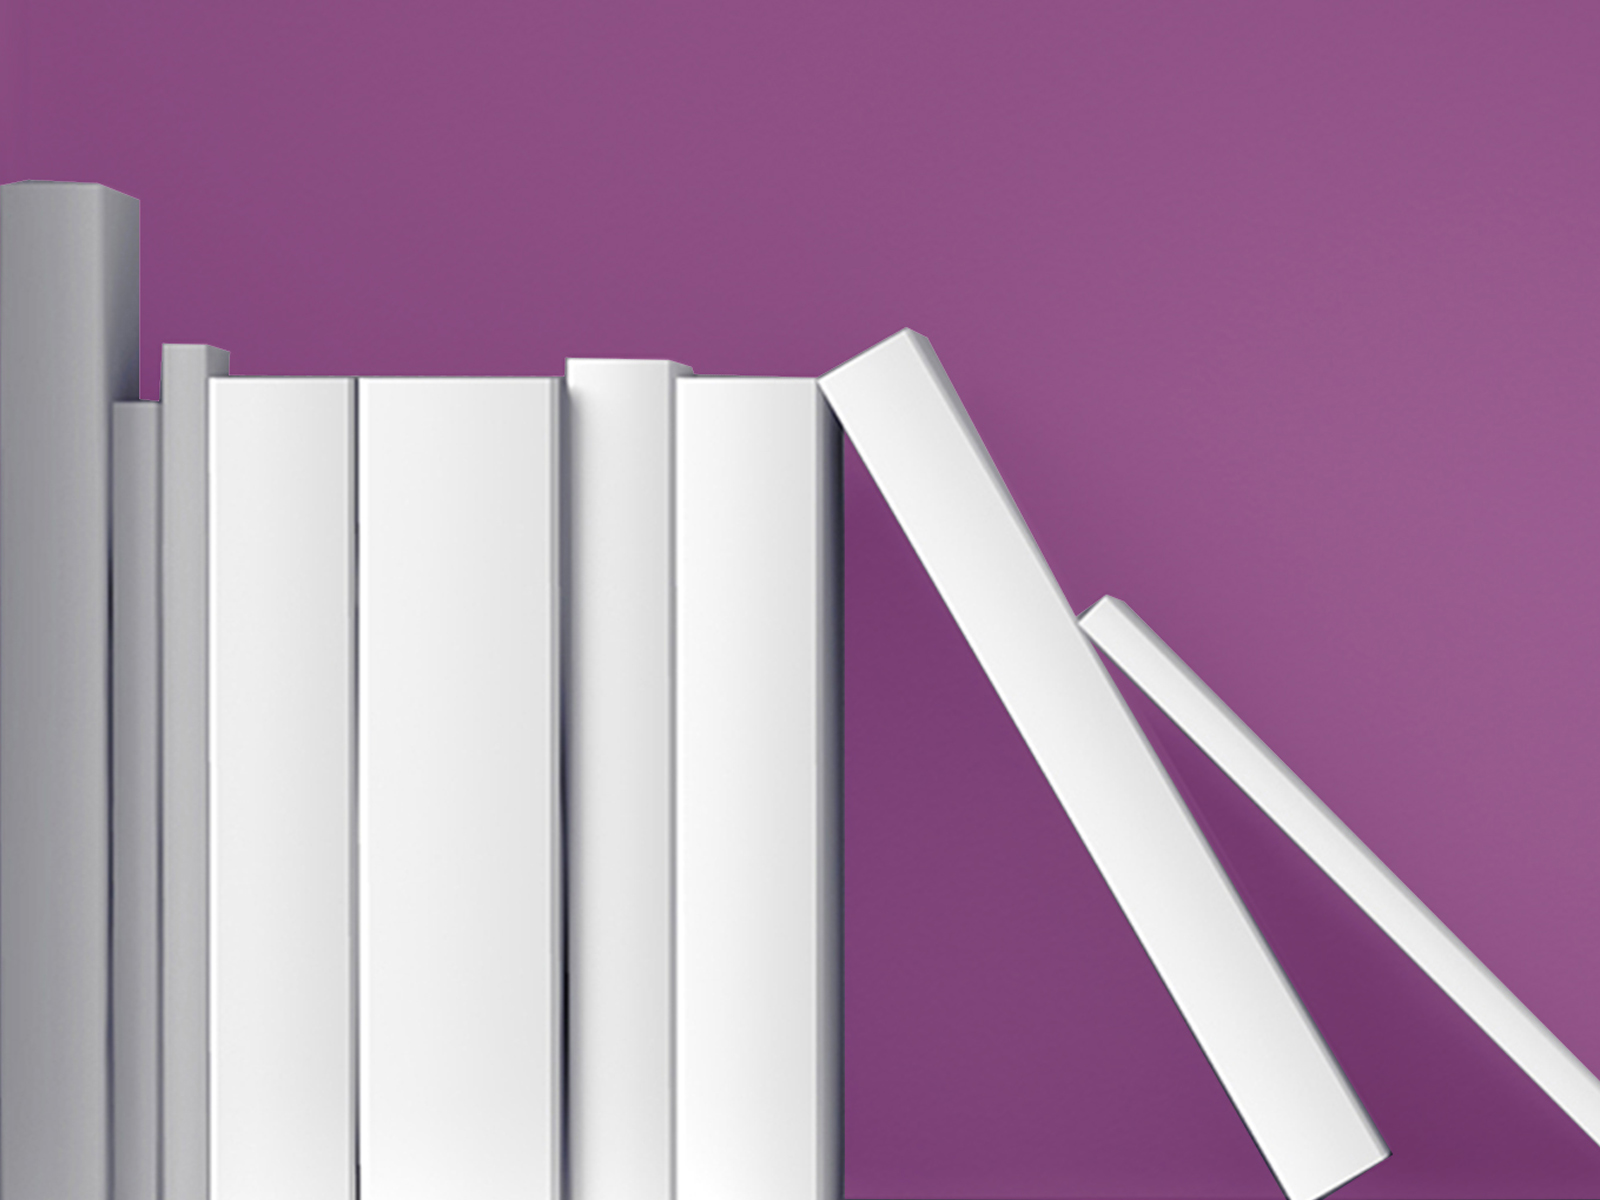 Intralinks VIA® resources